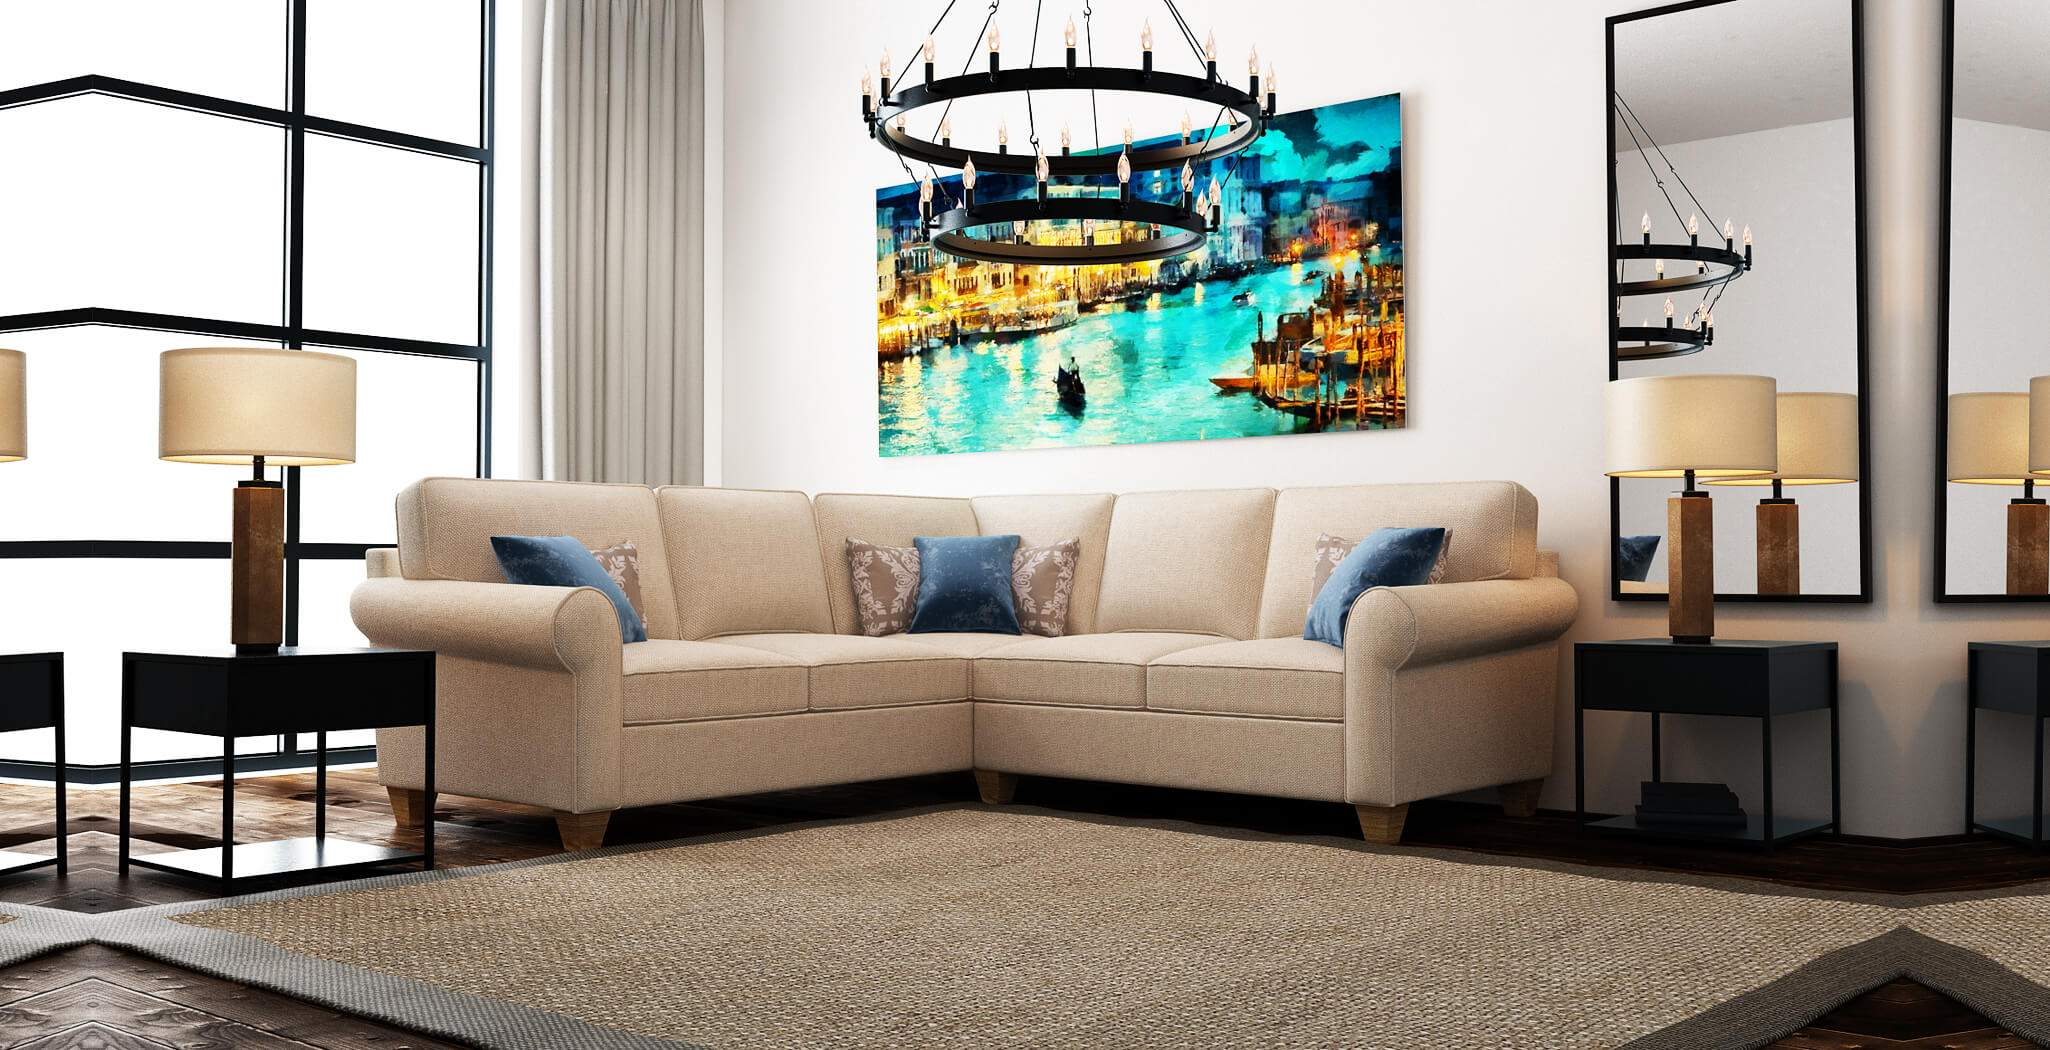 augusta sectional furniture gallery 3